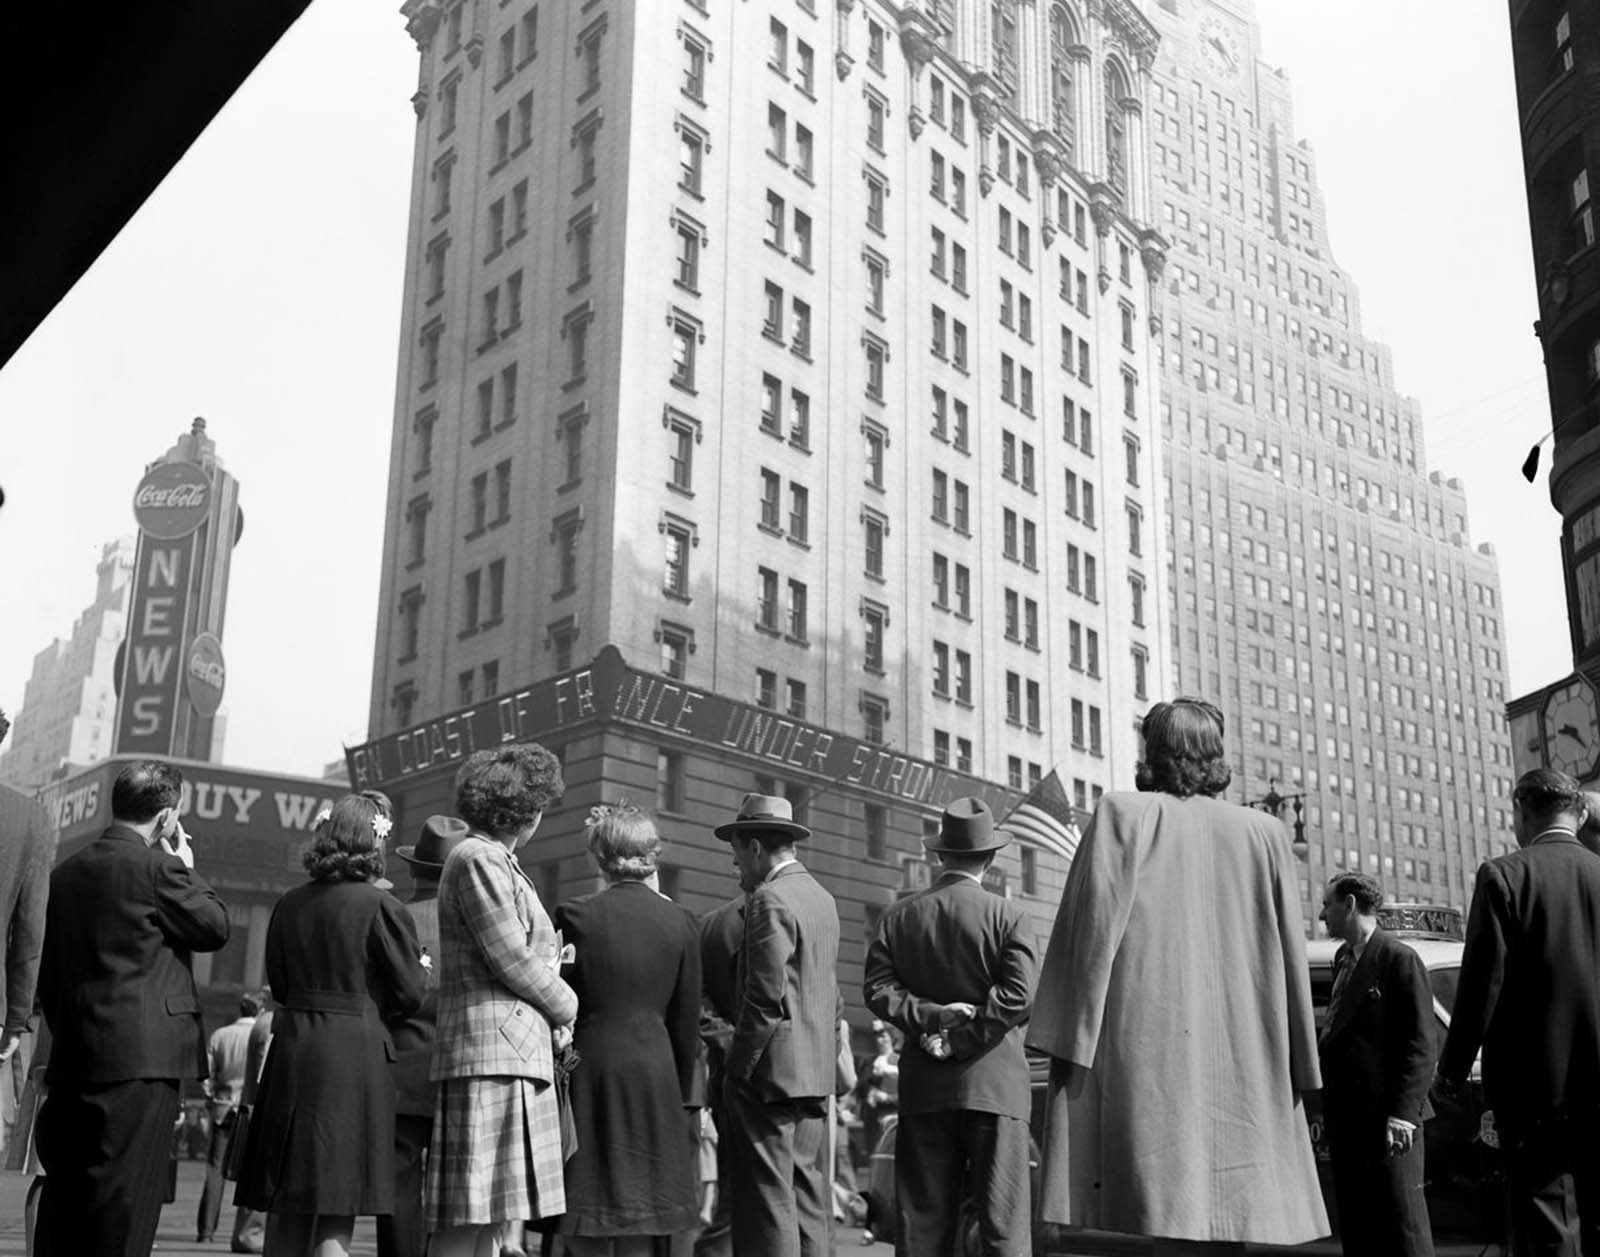 Crowds watching the electronic ticker on the New York Times building in Times Square as they waited for the latest reports.